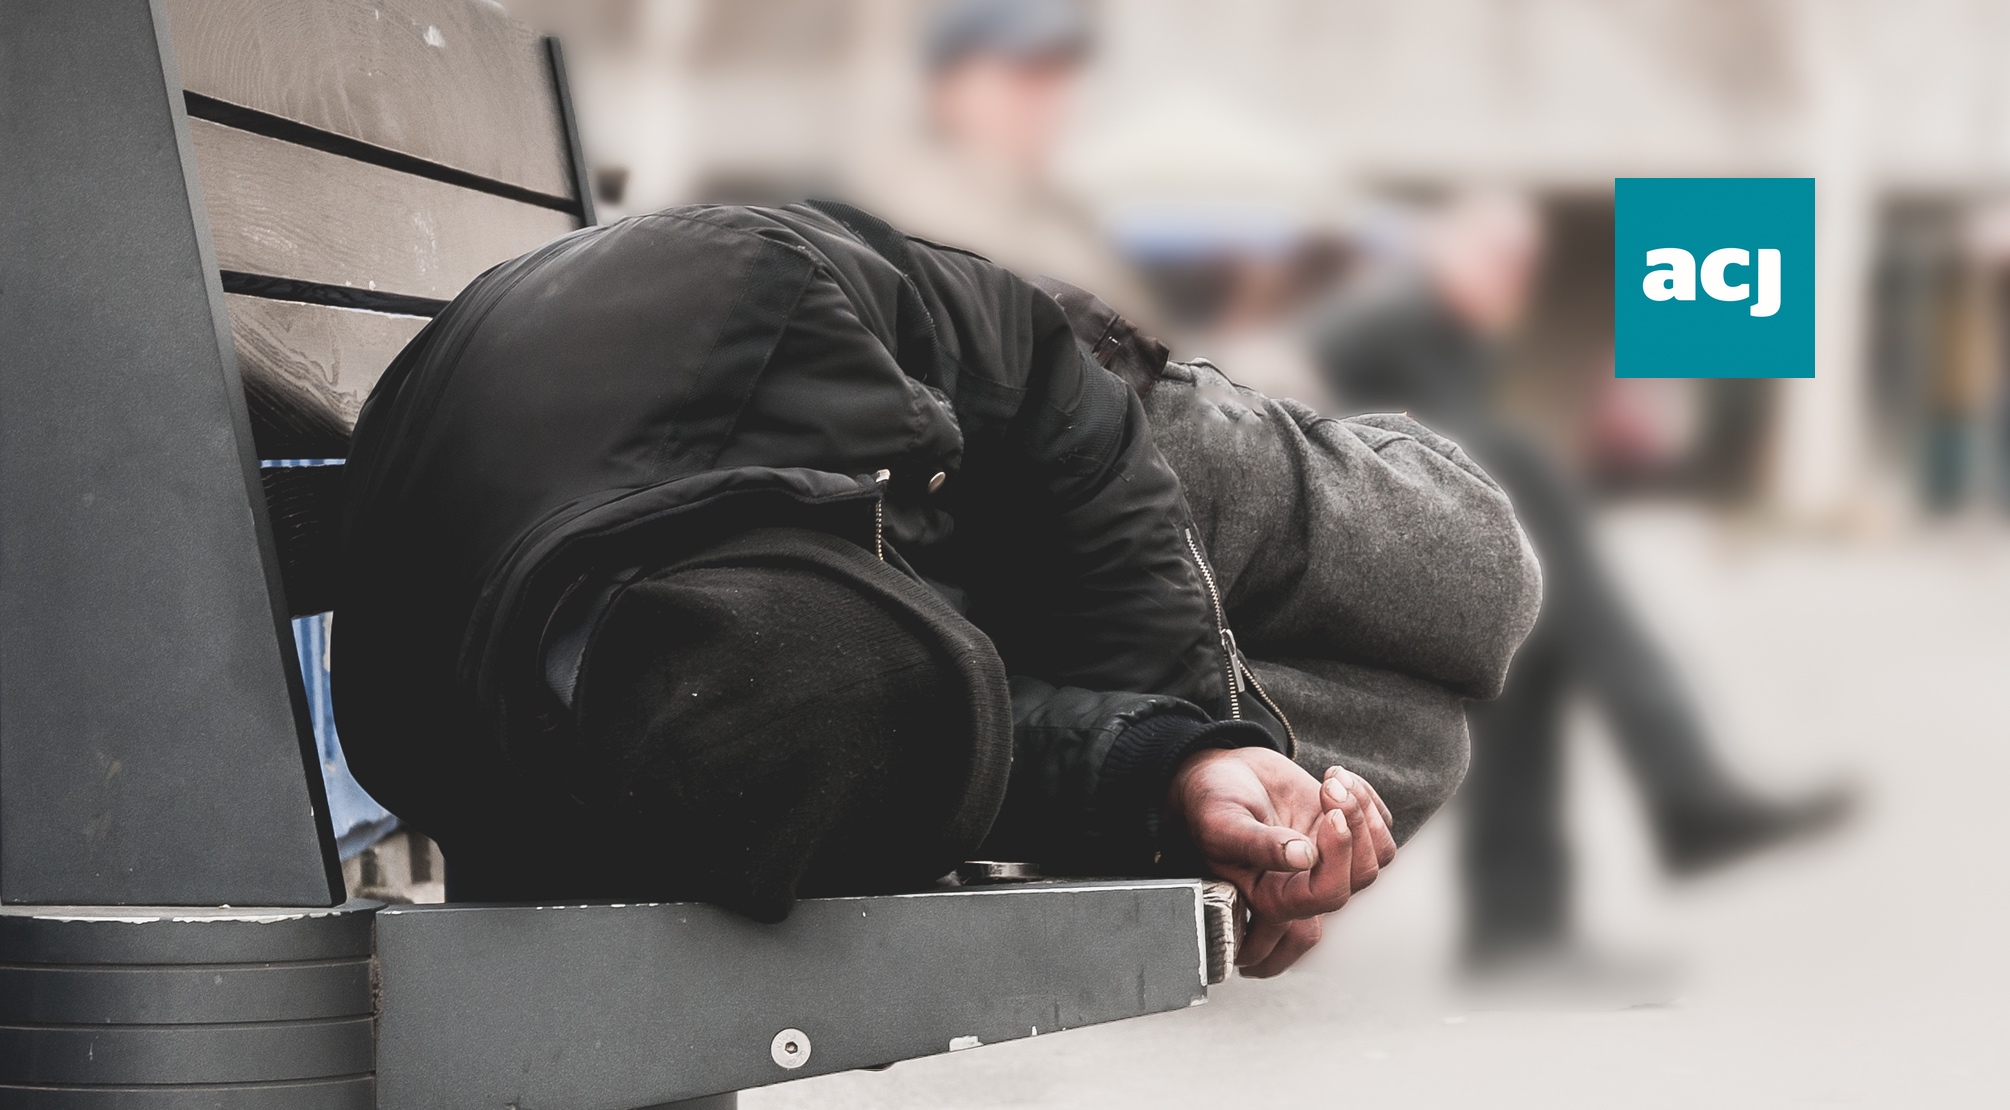 BMA investigation: Number of homeless people visiting A&E has tripled since 2011